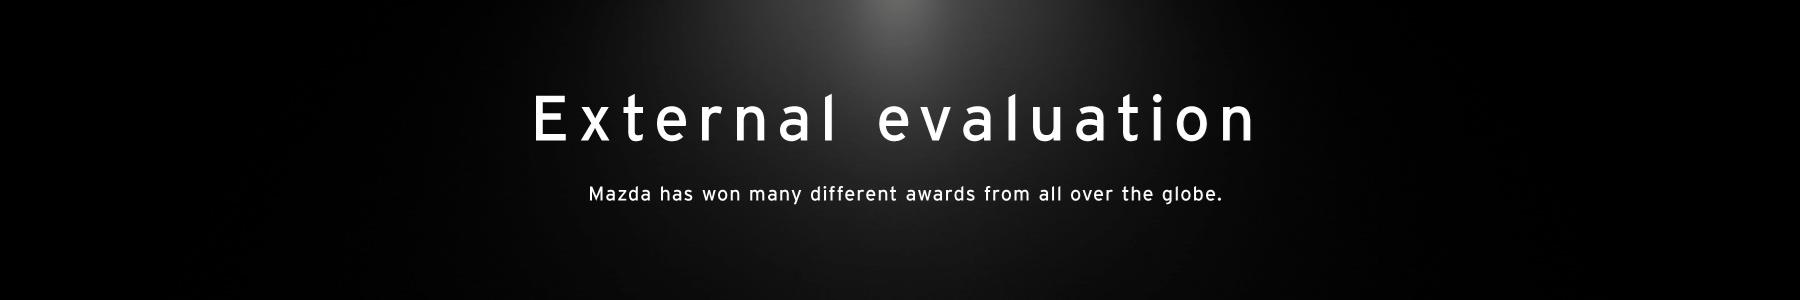 External evaluation